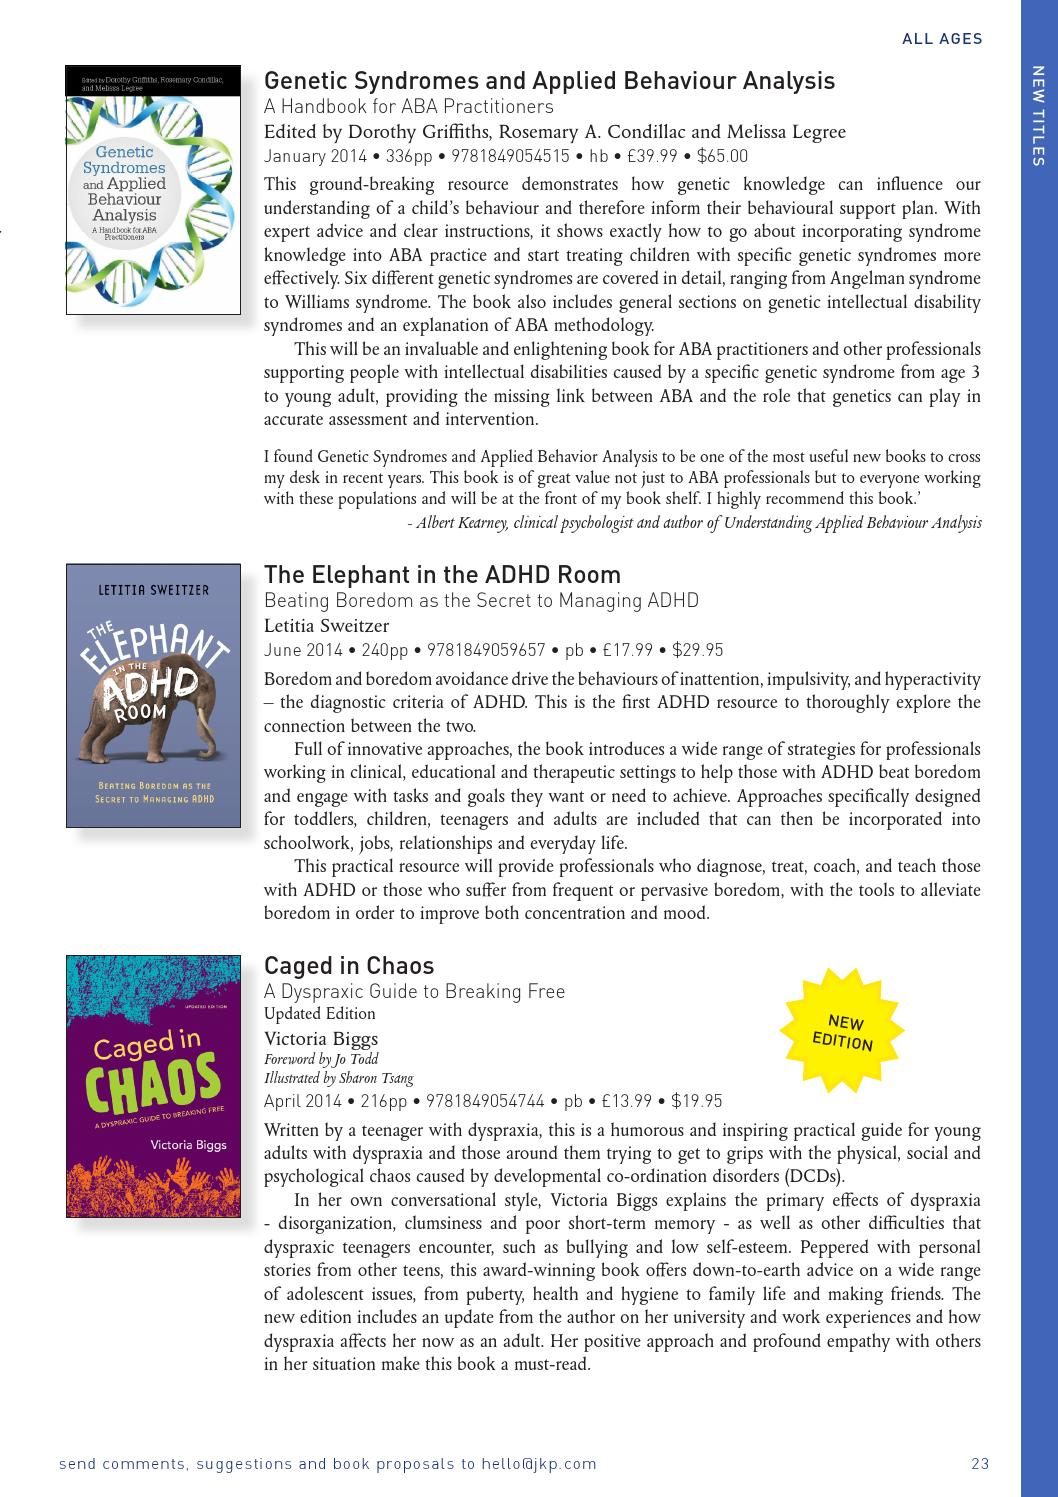 New and bestselling books on Autism Spectrum Disorders and